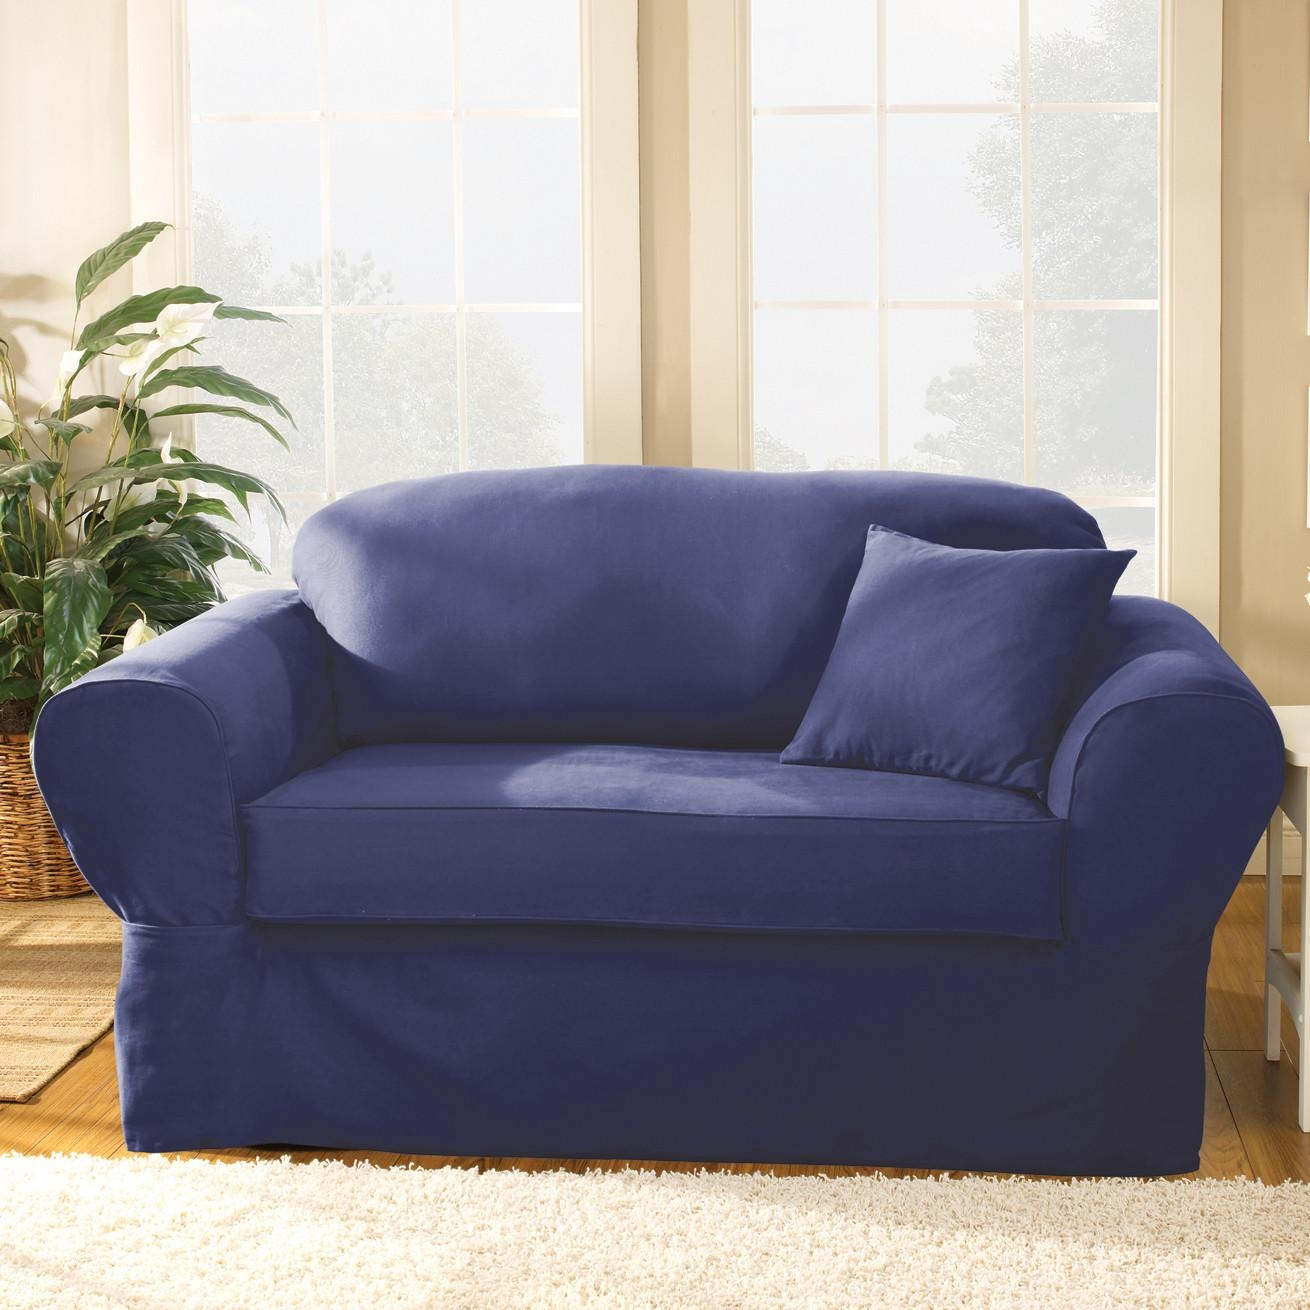 Blue Sofa Covers With Design Gallery 16308 | Kengire Throughout Blue Sofa Slipcovers (Image 1 of 20)